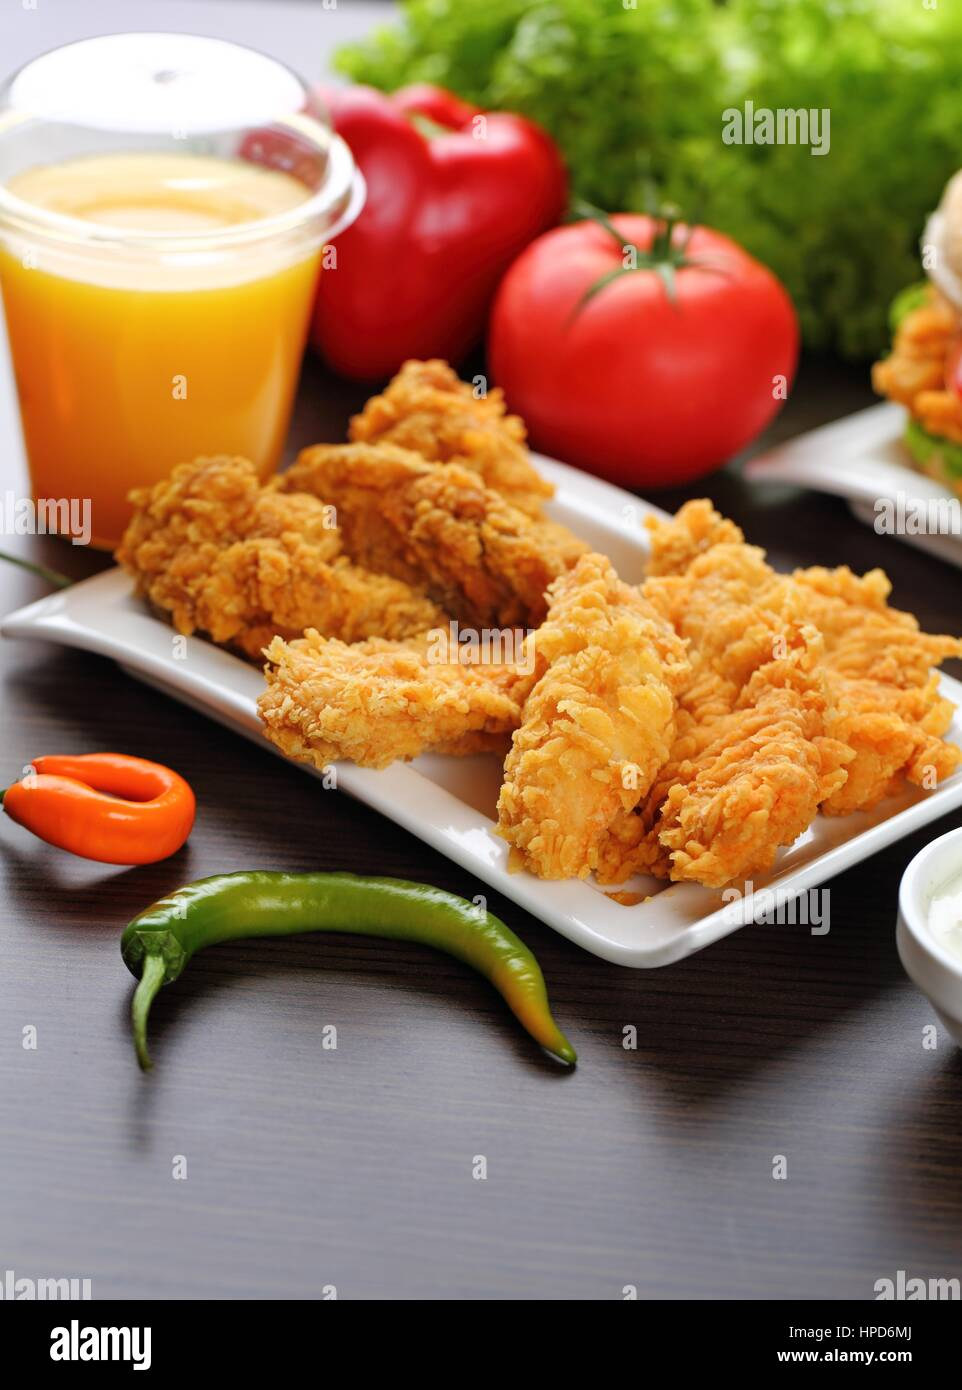 Breaded chicken strips with sauces, tomatoes, peppers. - Stock Image